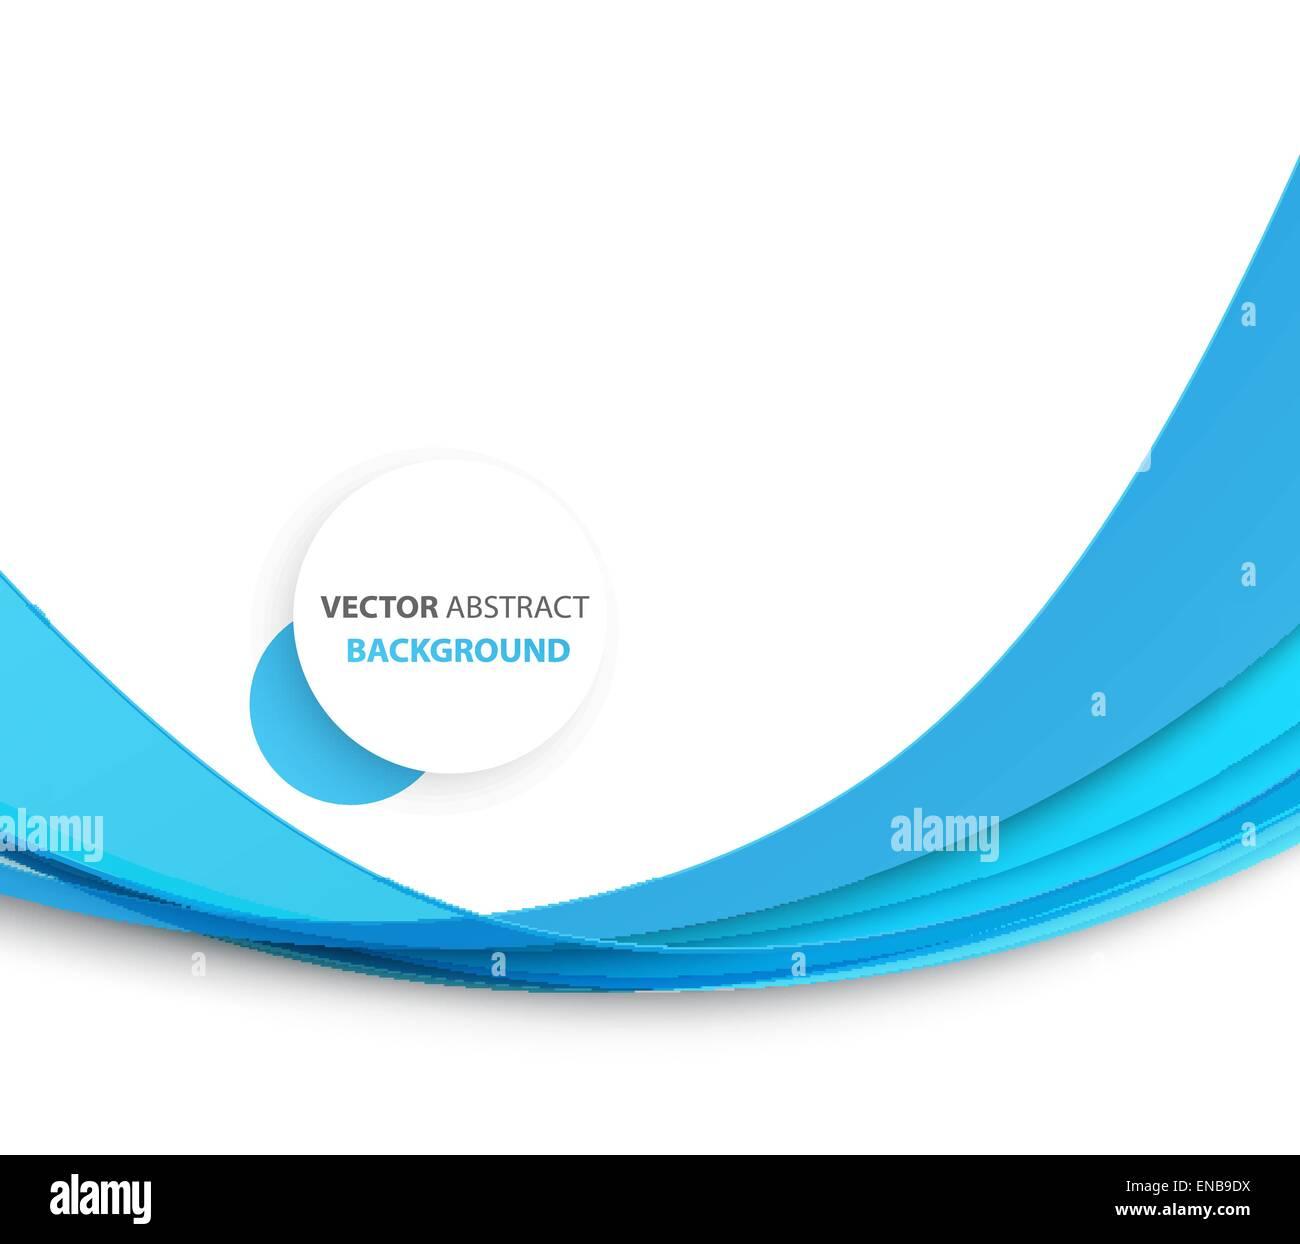 Abstract Blue Wave Template Background Brochure Design